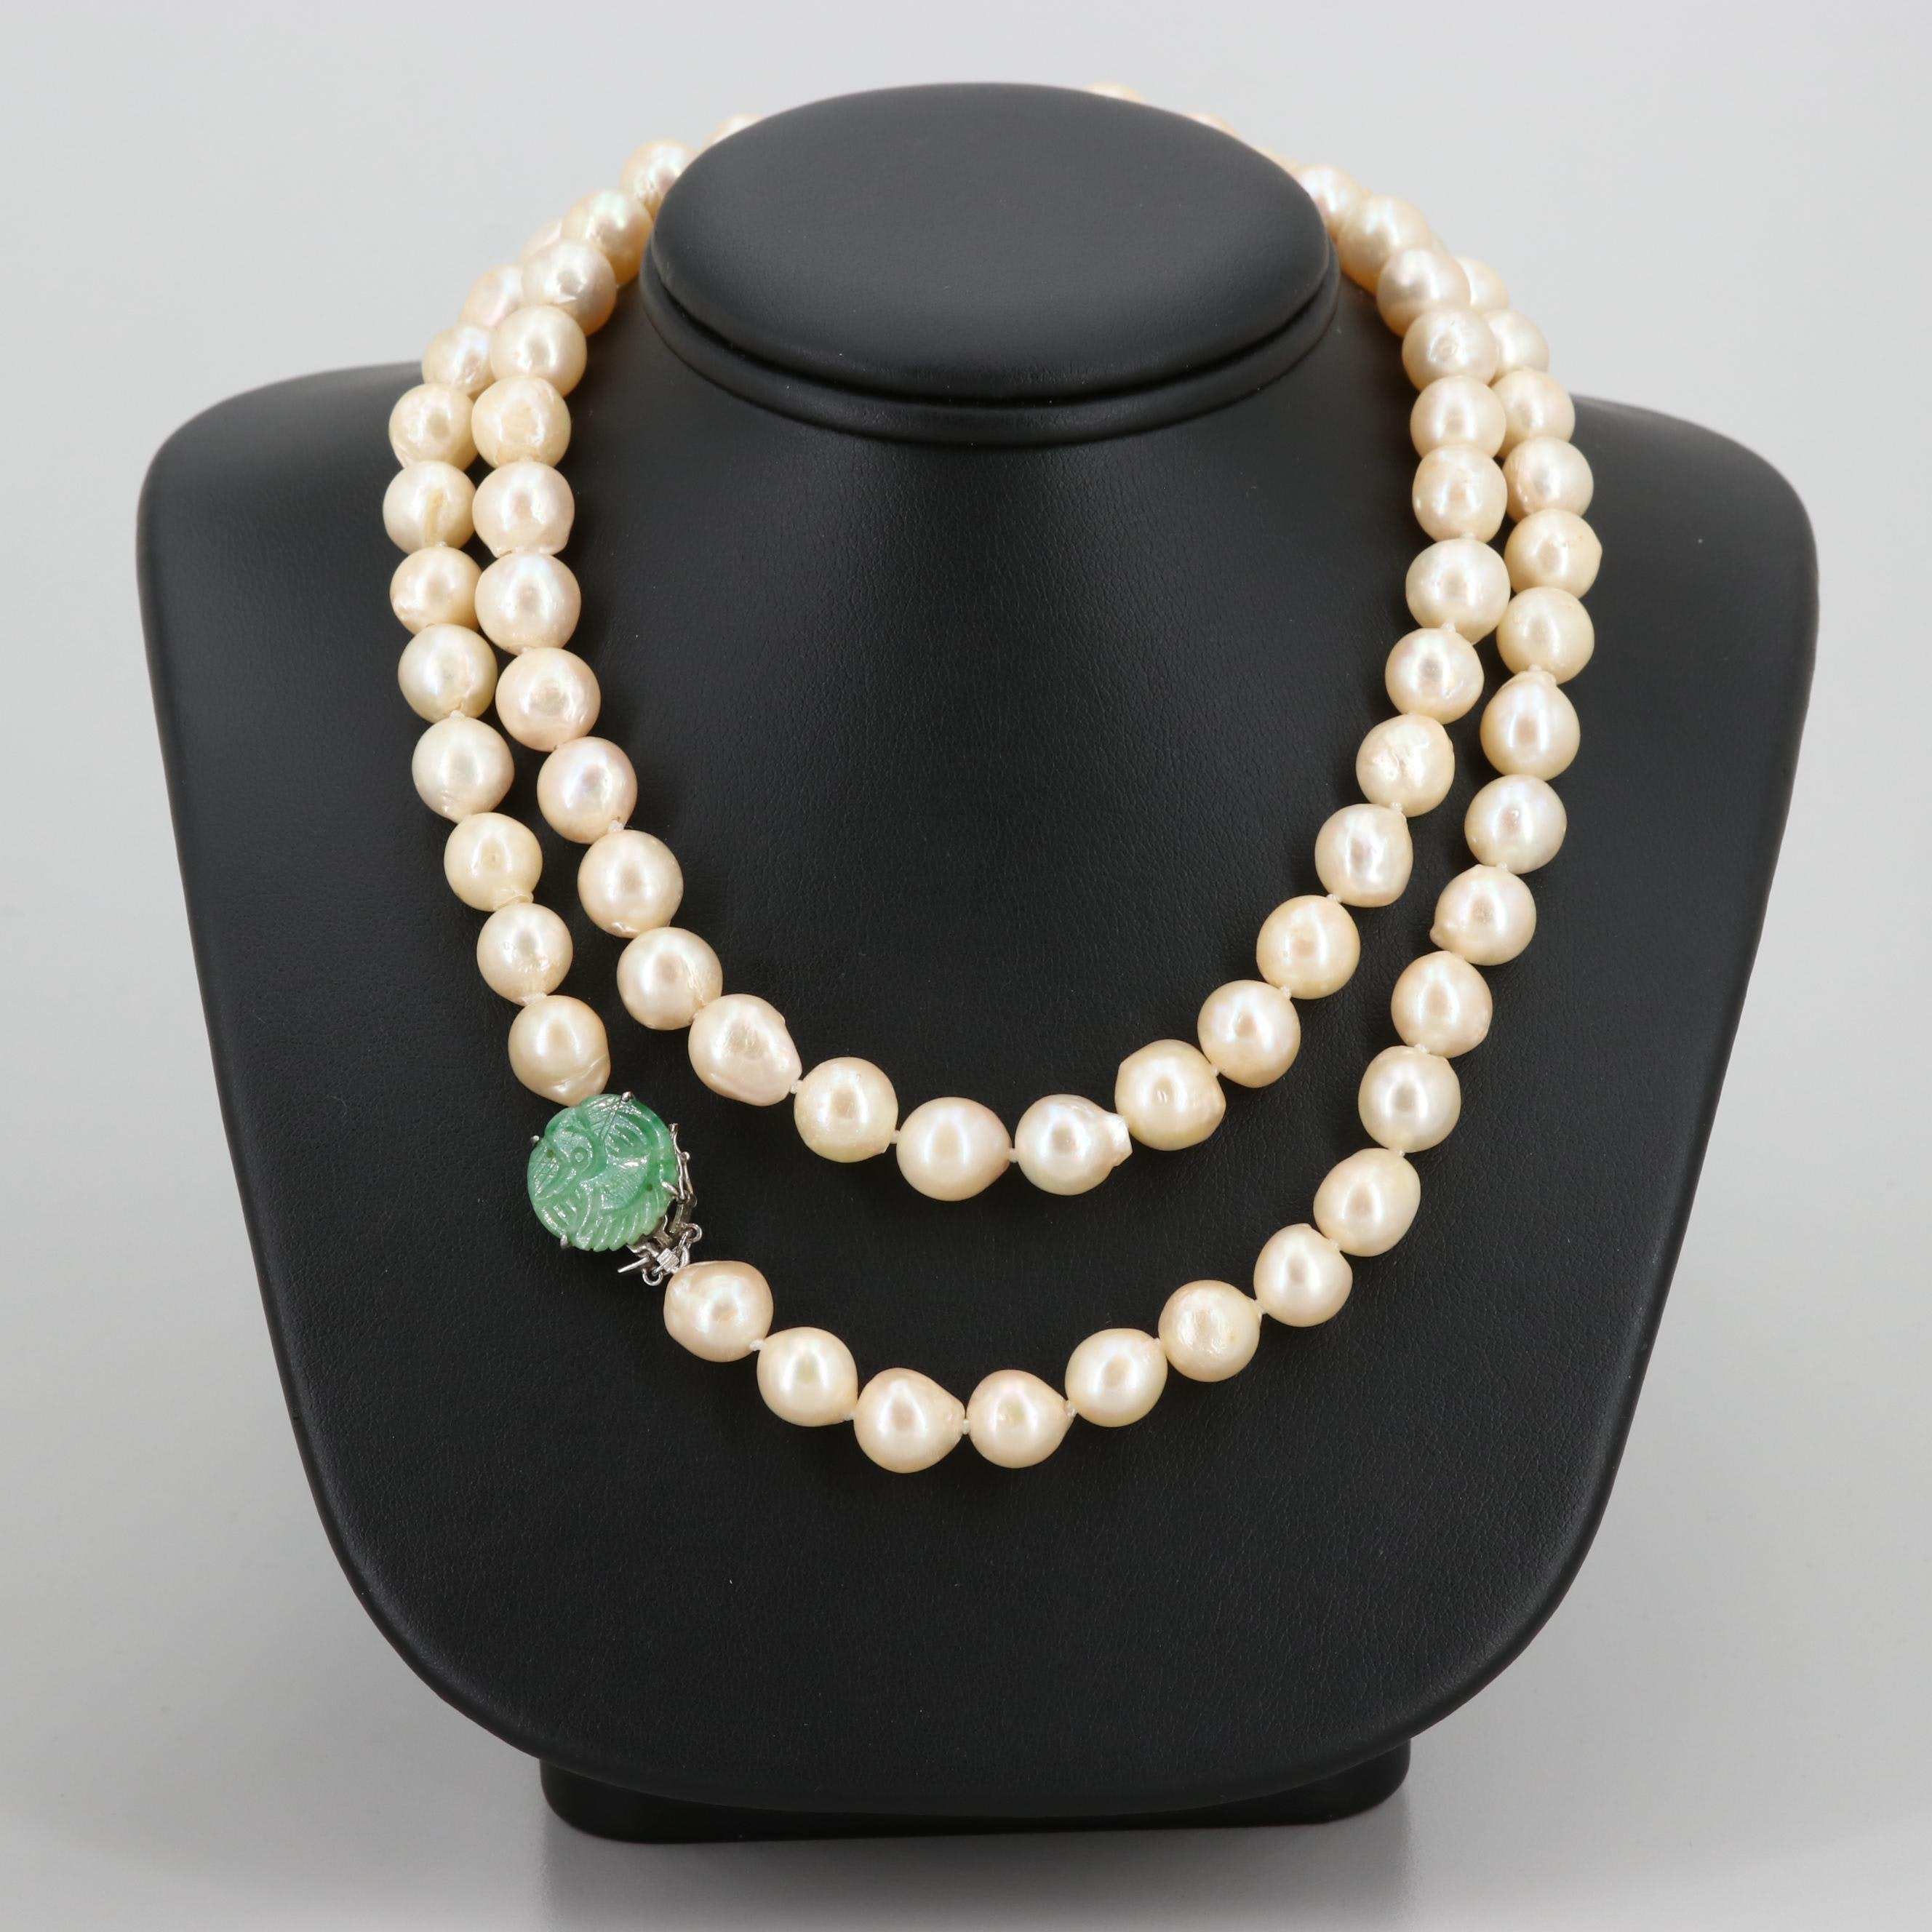 Cultured Pearl Bead Necklace with Jadeite and Silver Tone Clasp